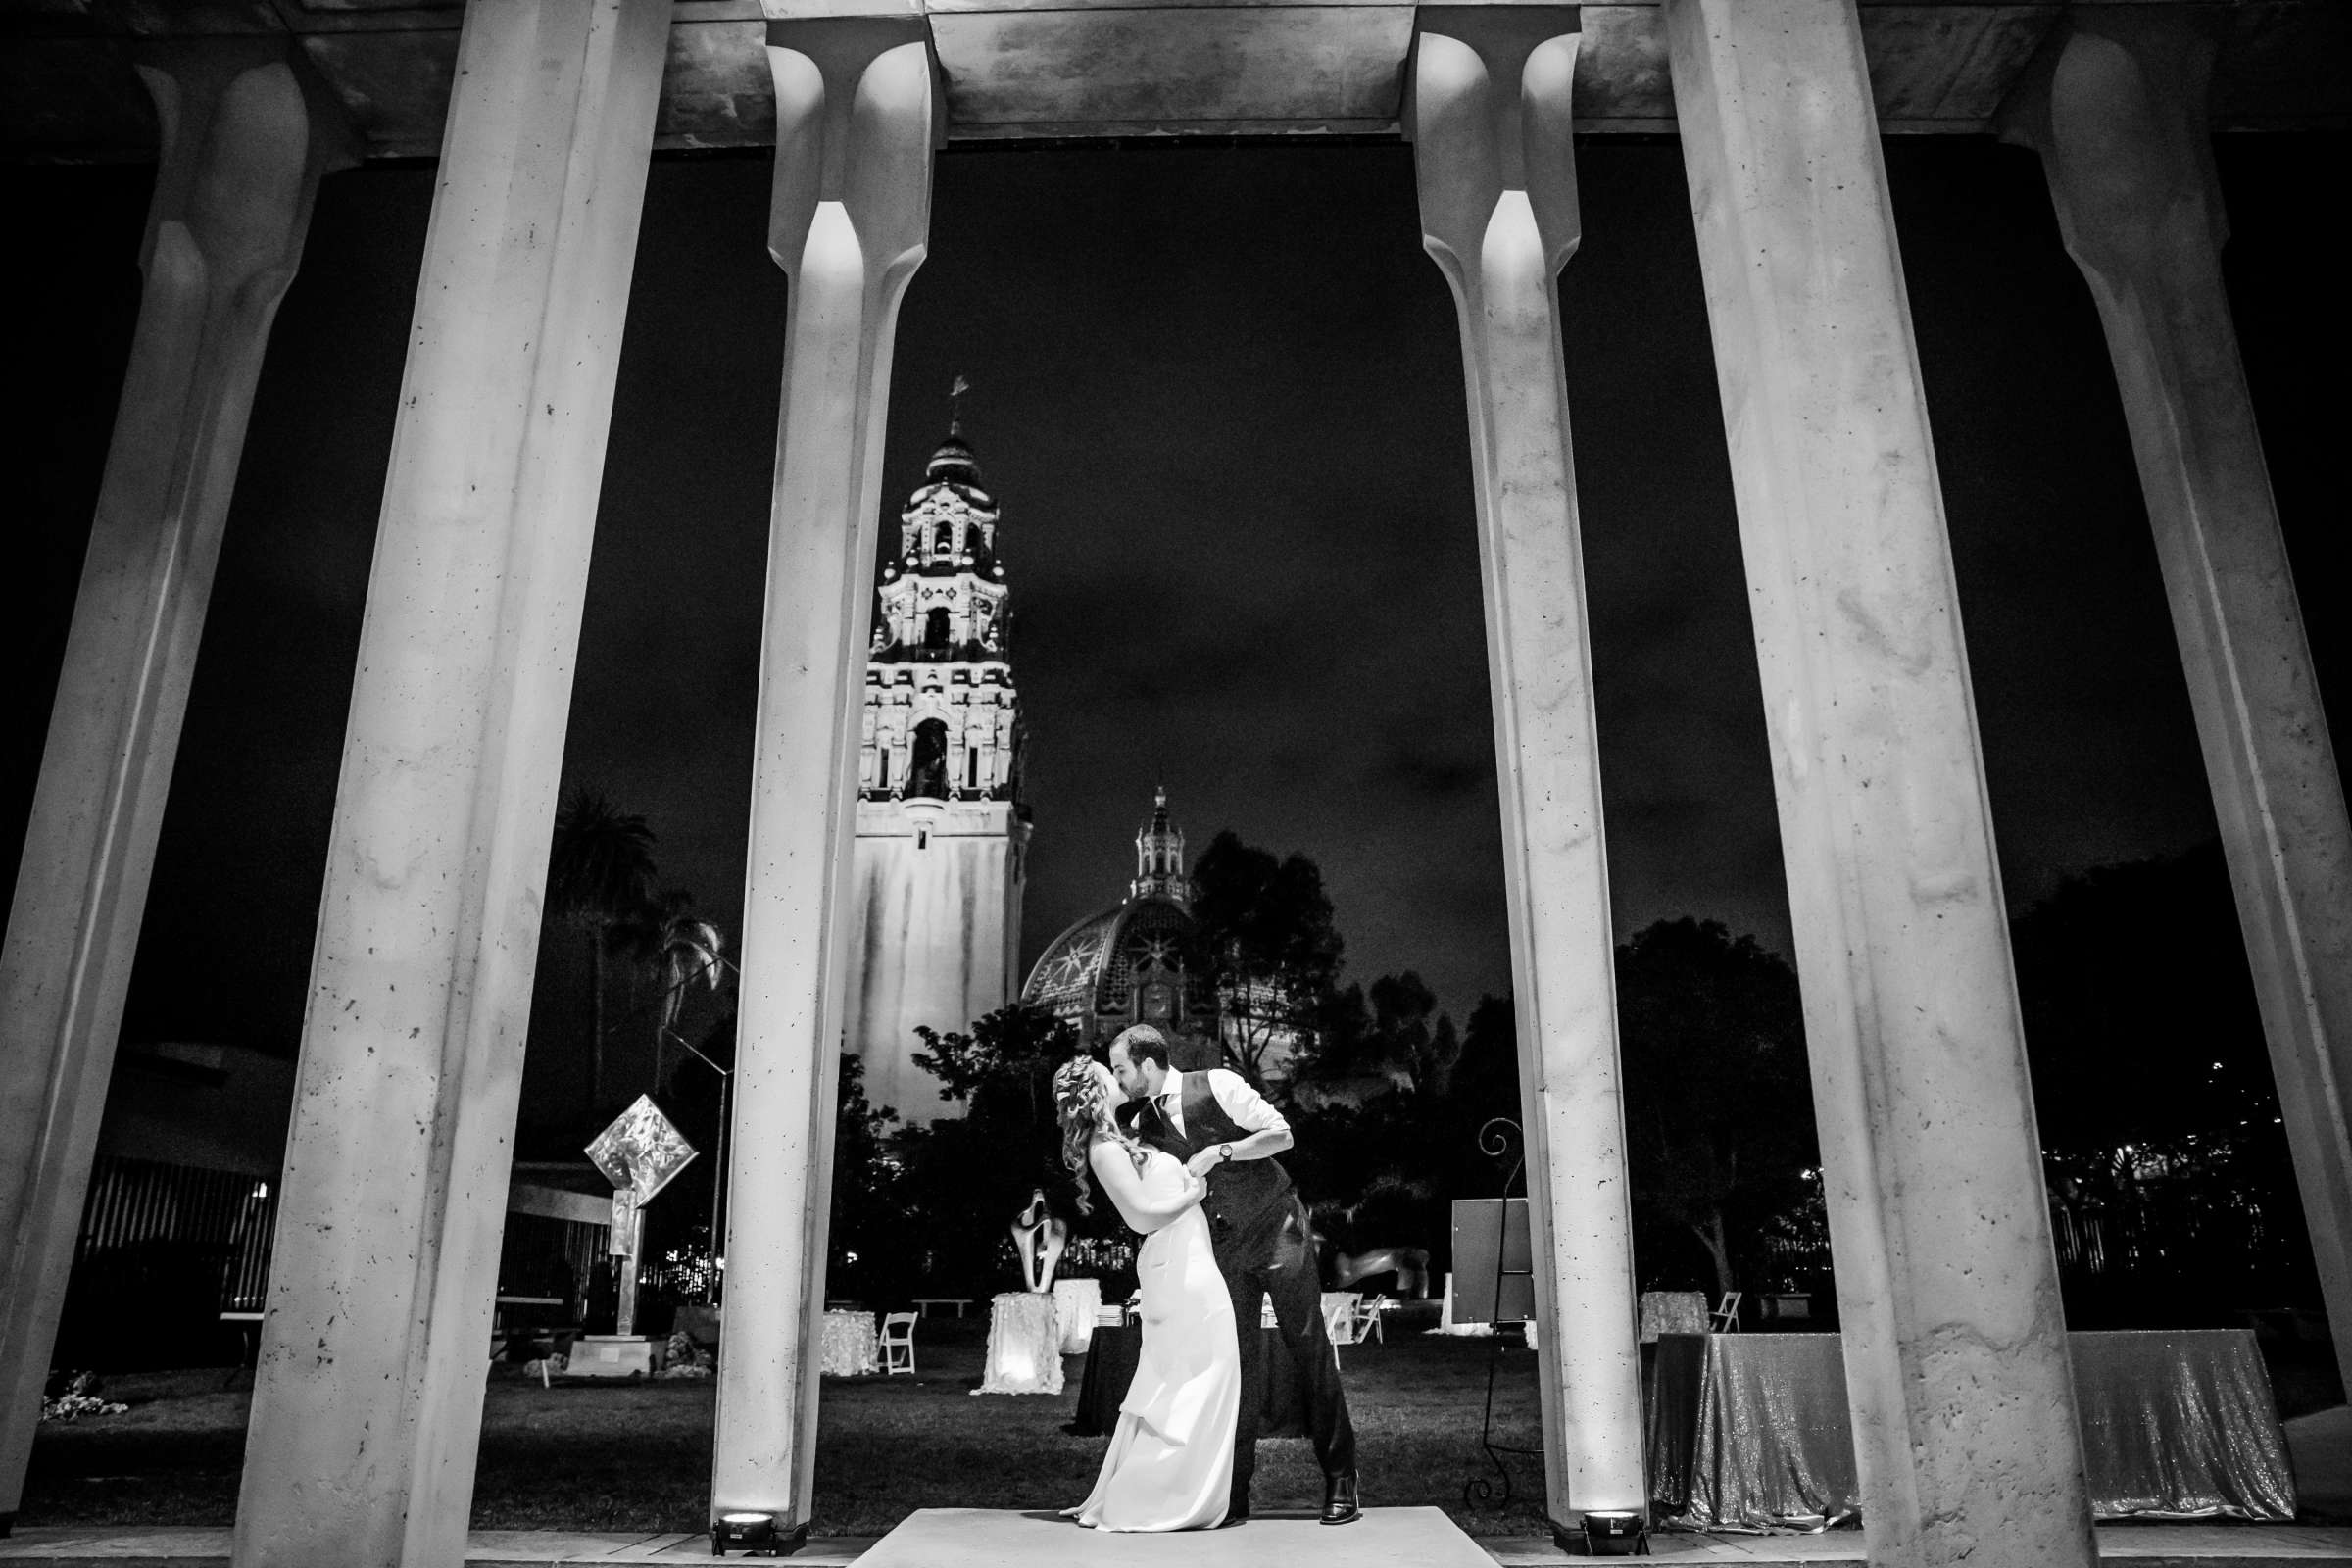 San Diego Museum of Art Wedding coordinated by First Comes Love Weddings & Events, Ruthie and Larry Wedding Photo #236858 by True Photography